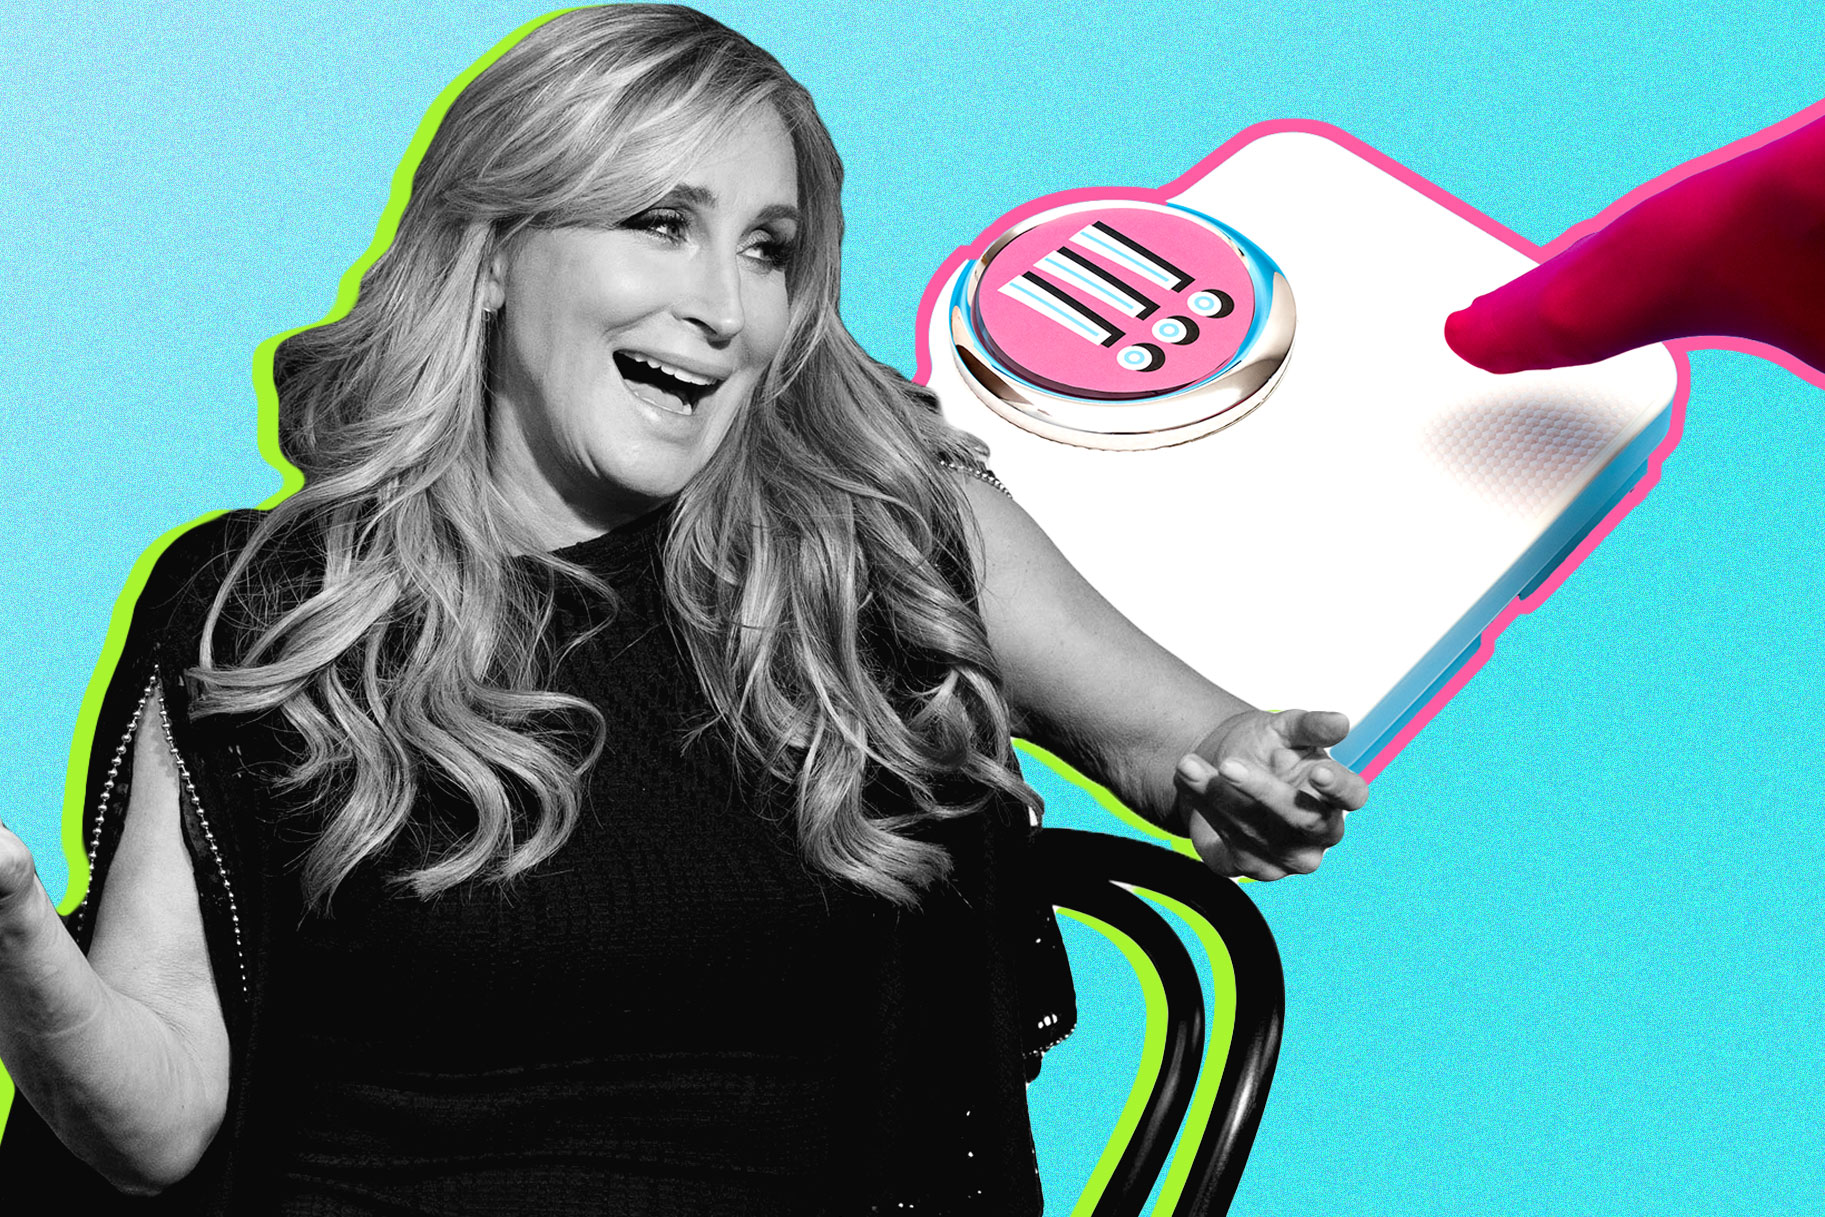 sonja-morgan-diet-secret.jpg